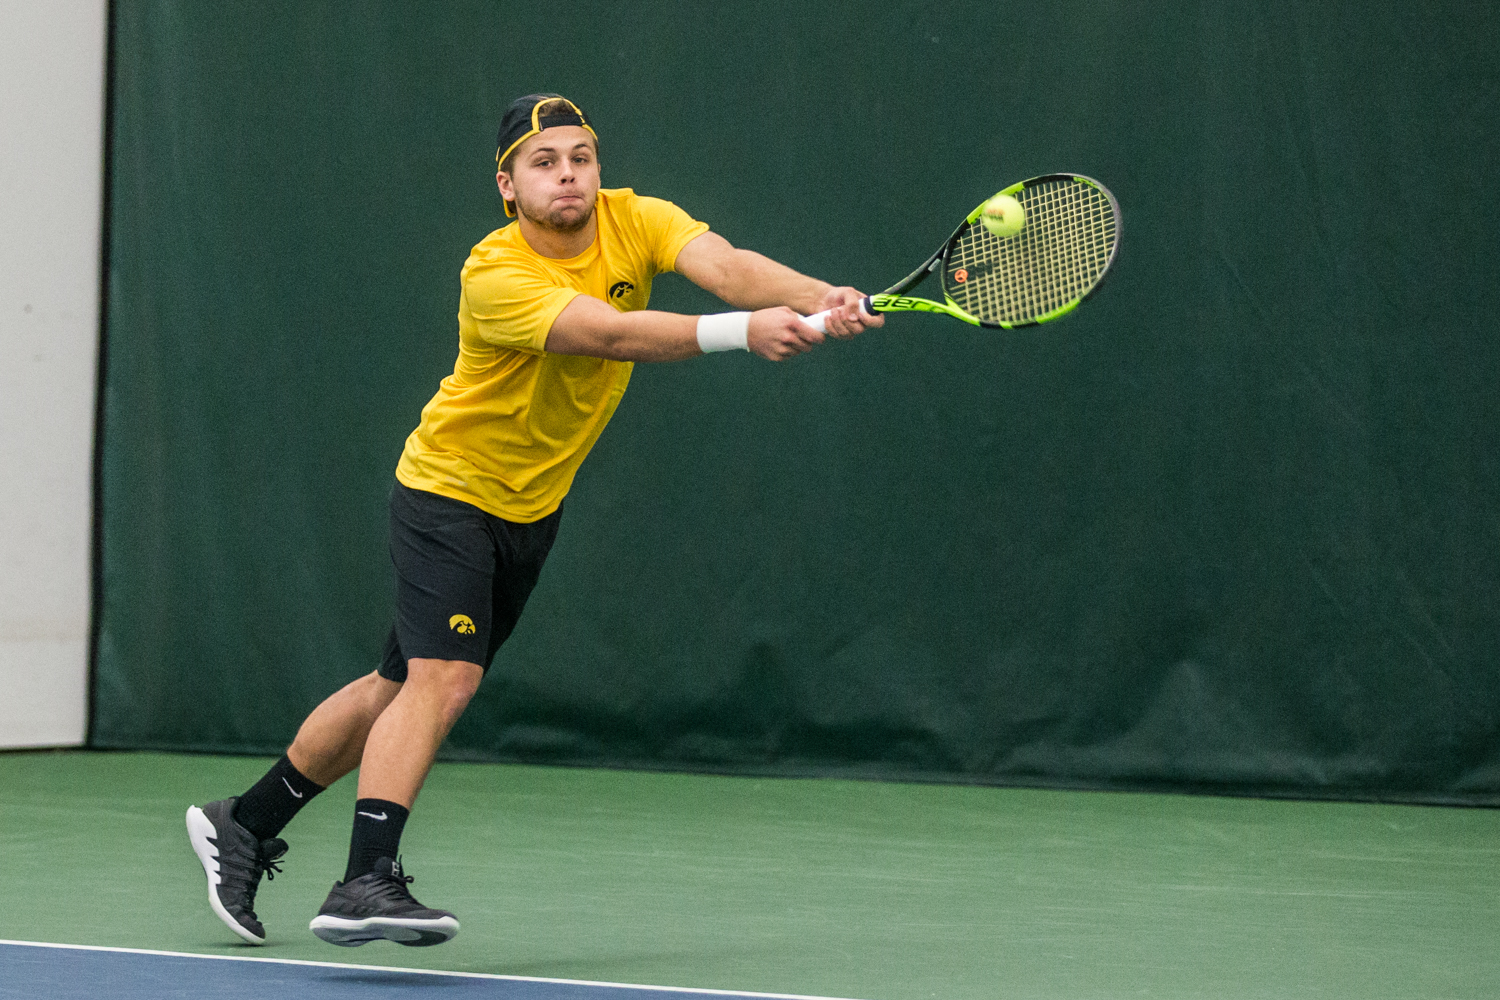 Iowa%27s+Will+Davies+hits+a+backhand+during+a+men%27s+tennis+matchup+between+Iowa+and+Butler+on+Sunday%2C+January+27%2C+2019.+The+Hawkeyes+defeated+the+Bulldogs%2C+5-2.